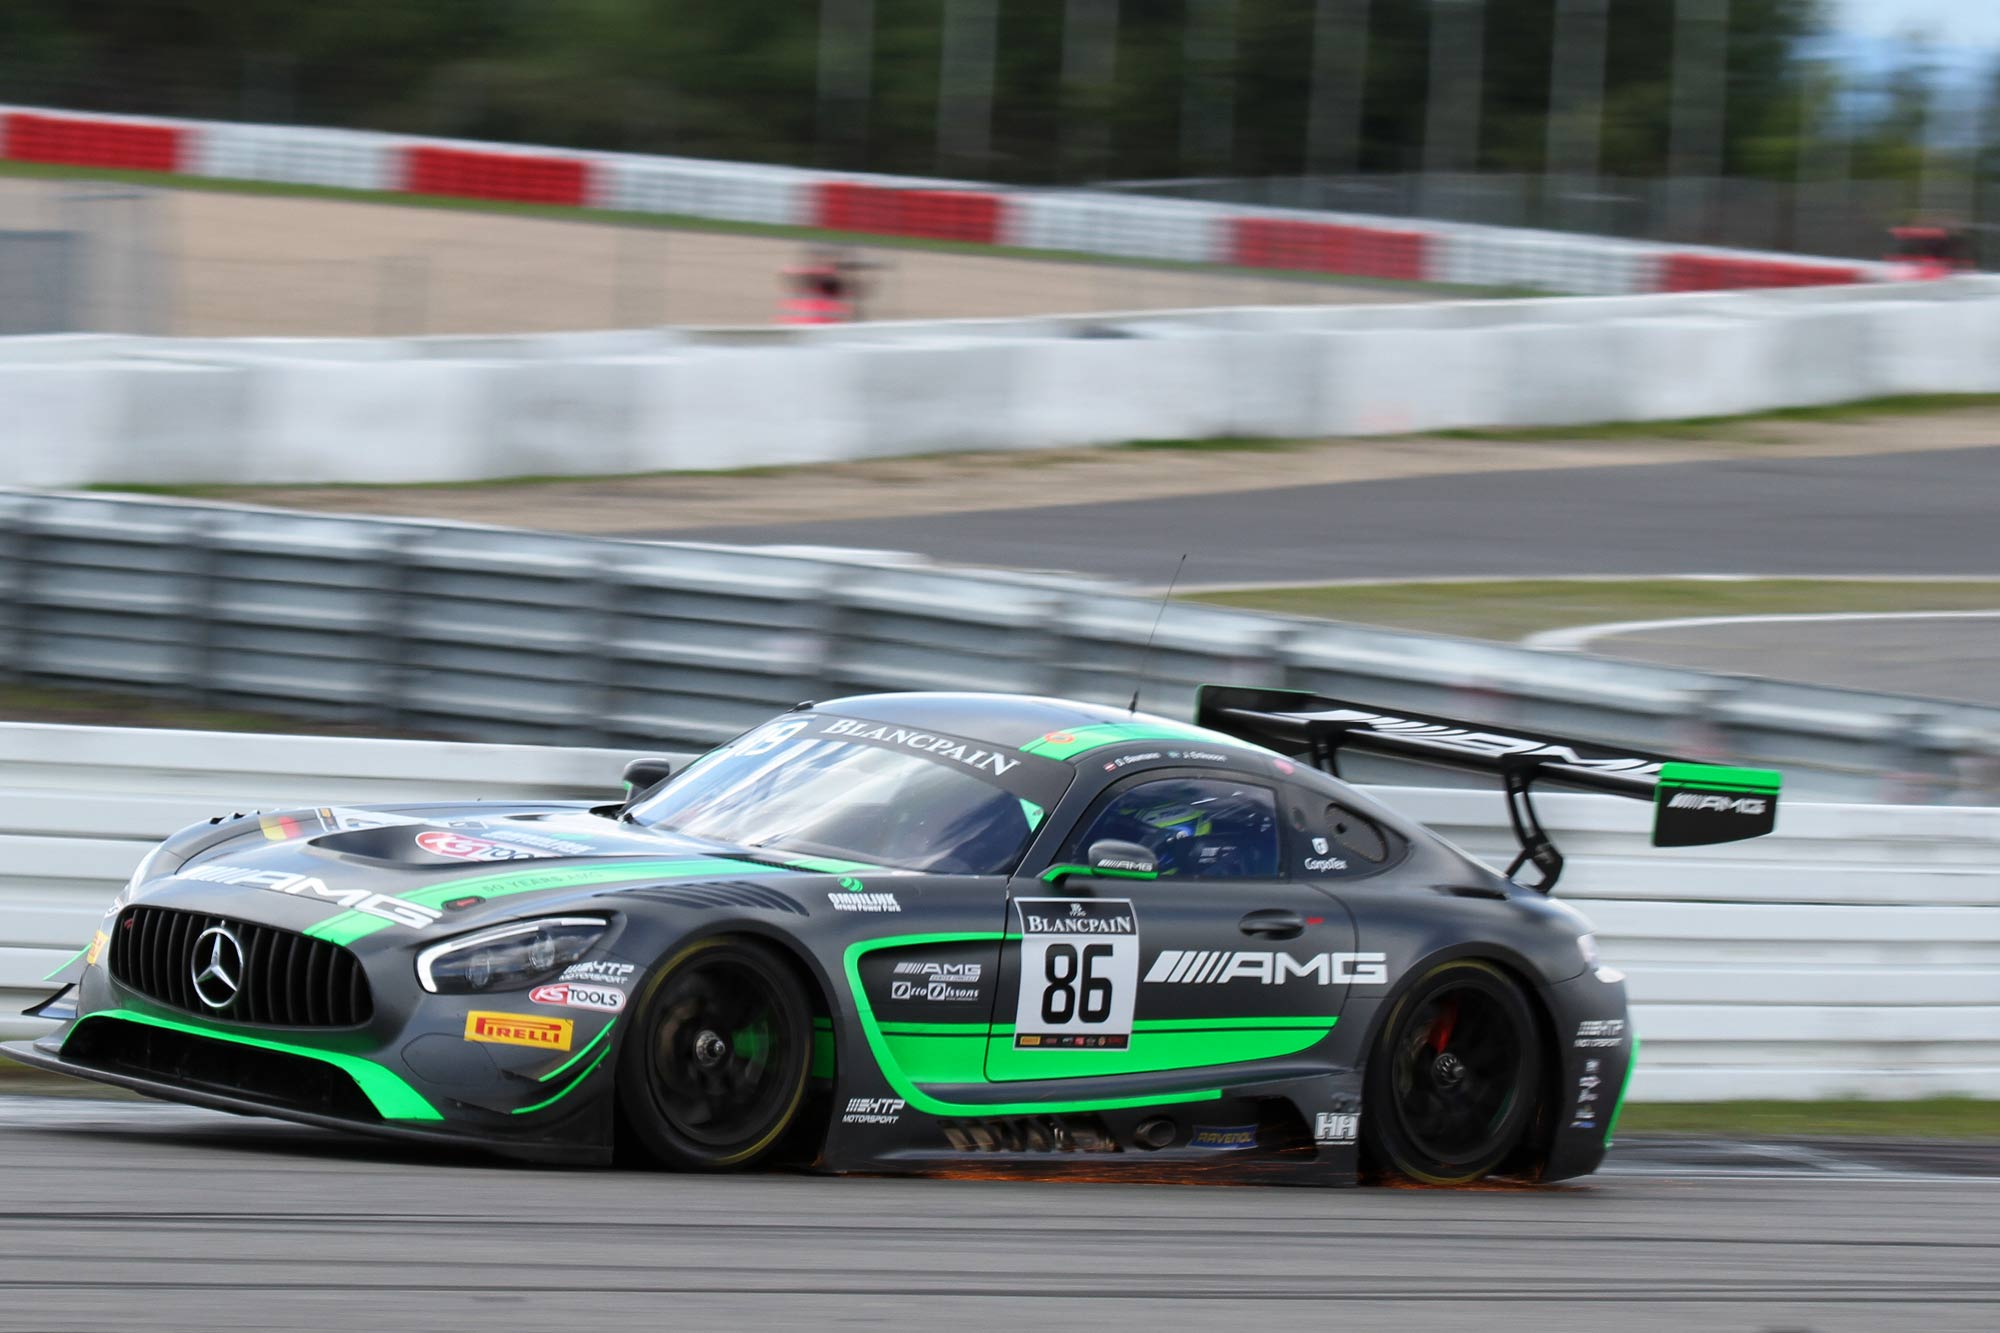 Double penalty offsets strong qualifying effort for Eriksson/Baumann